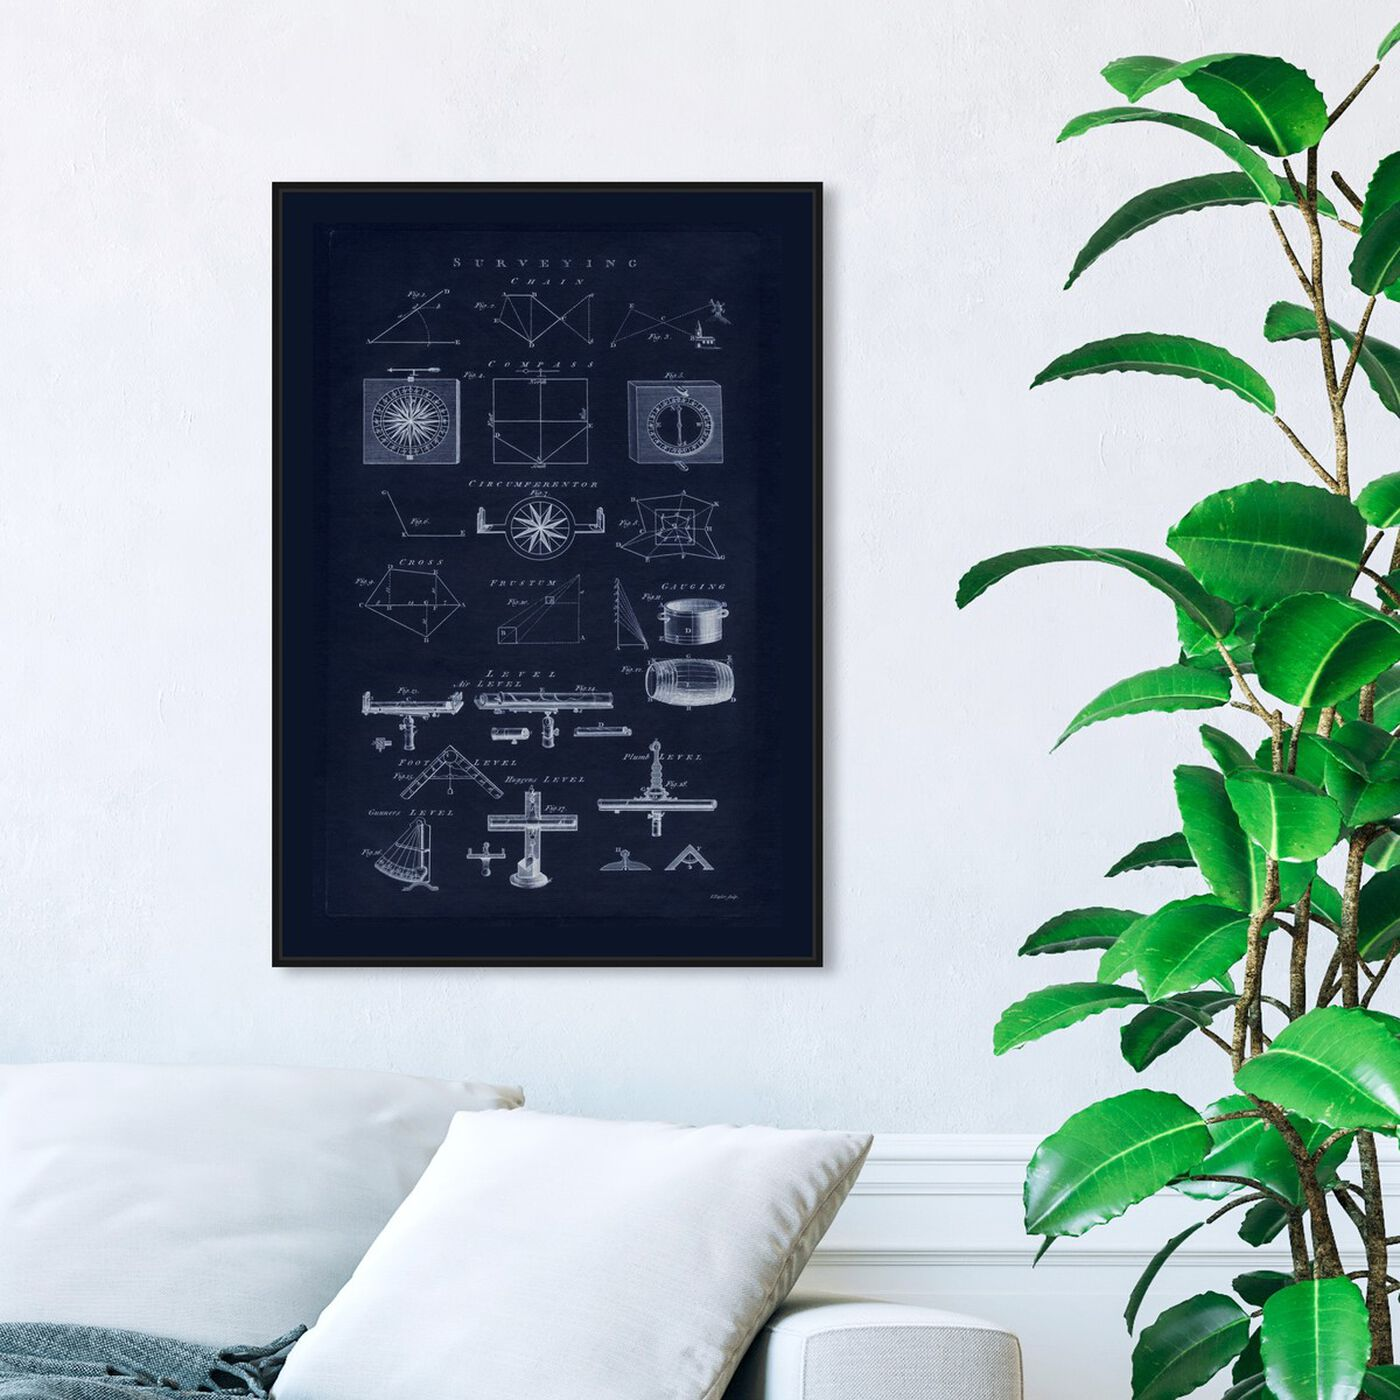 Hanging view of Surveying Astro featuring architecture and buildings and structures art.